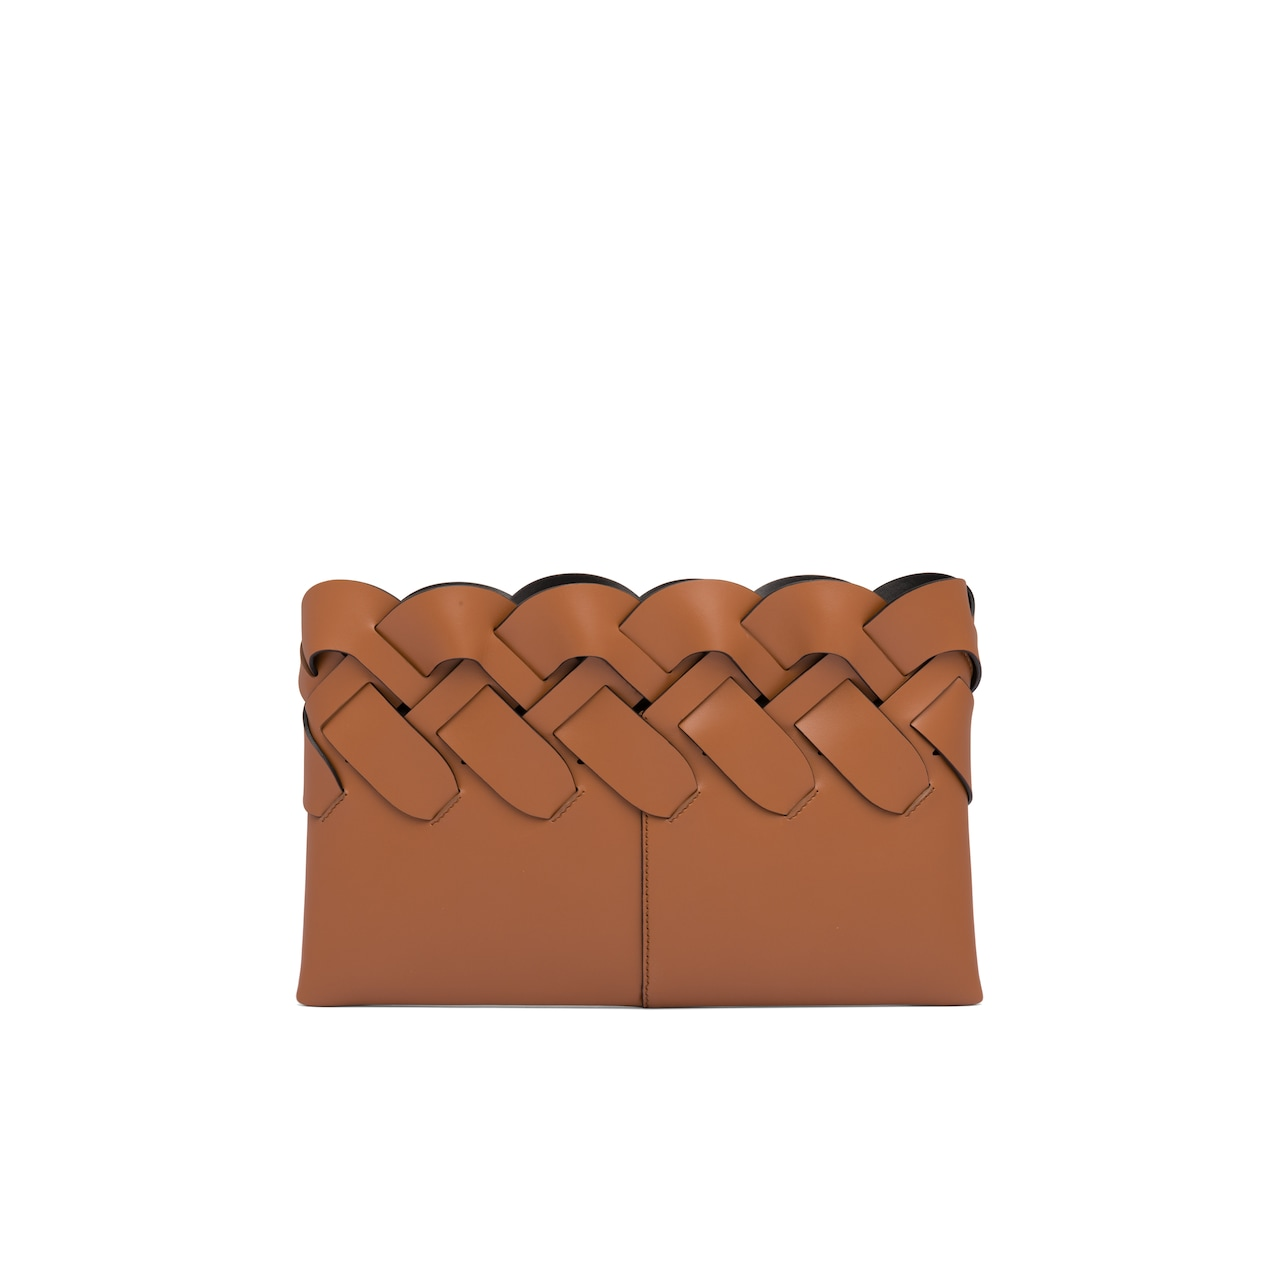 Prada Leather clutch with large woven motif 4